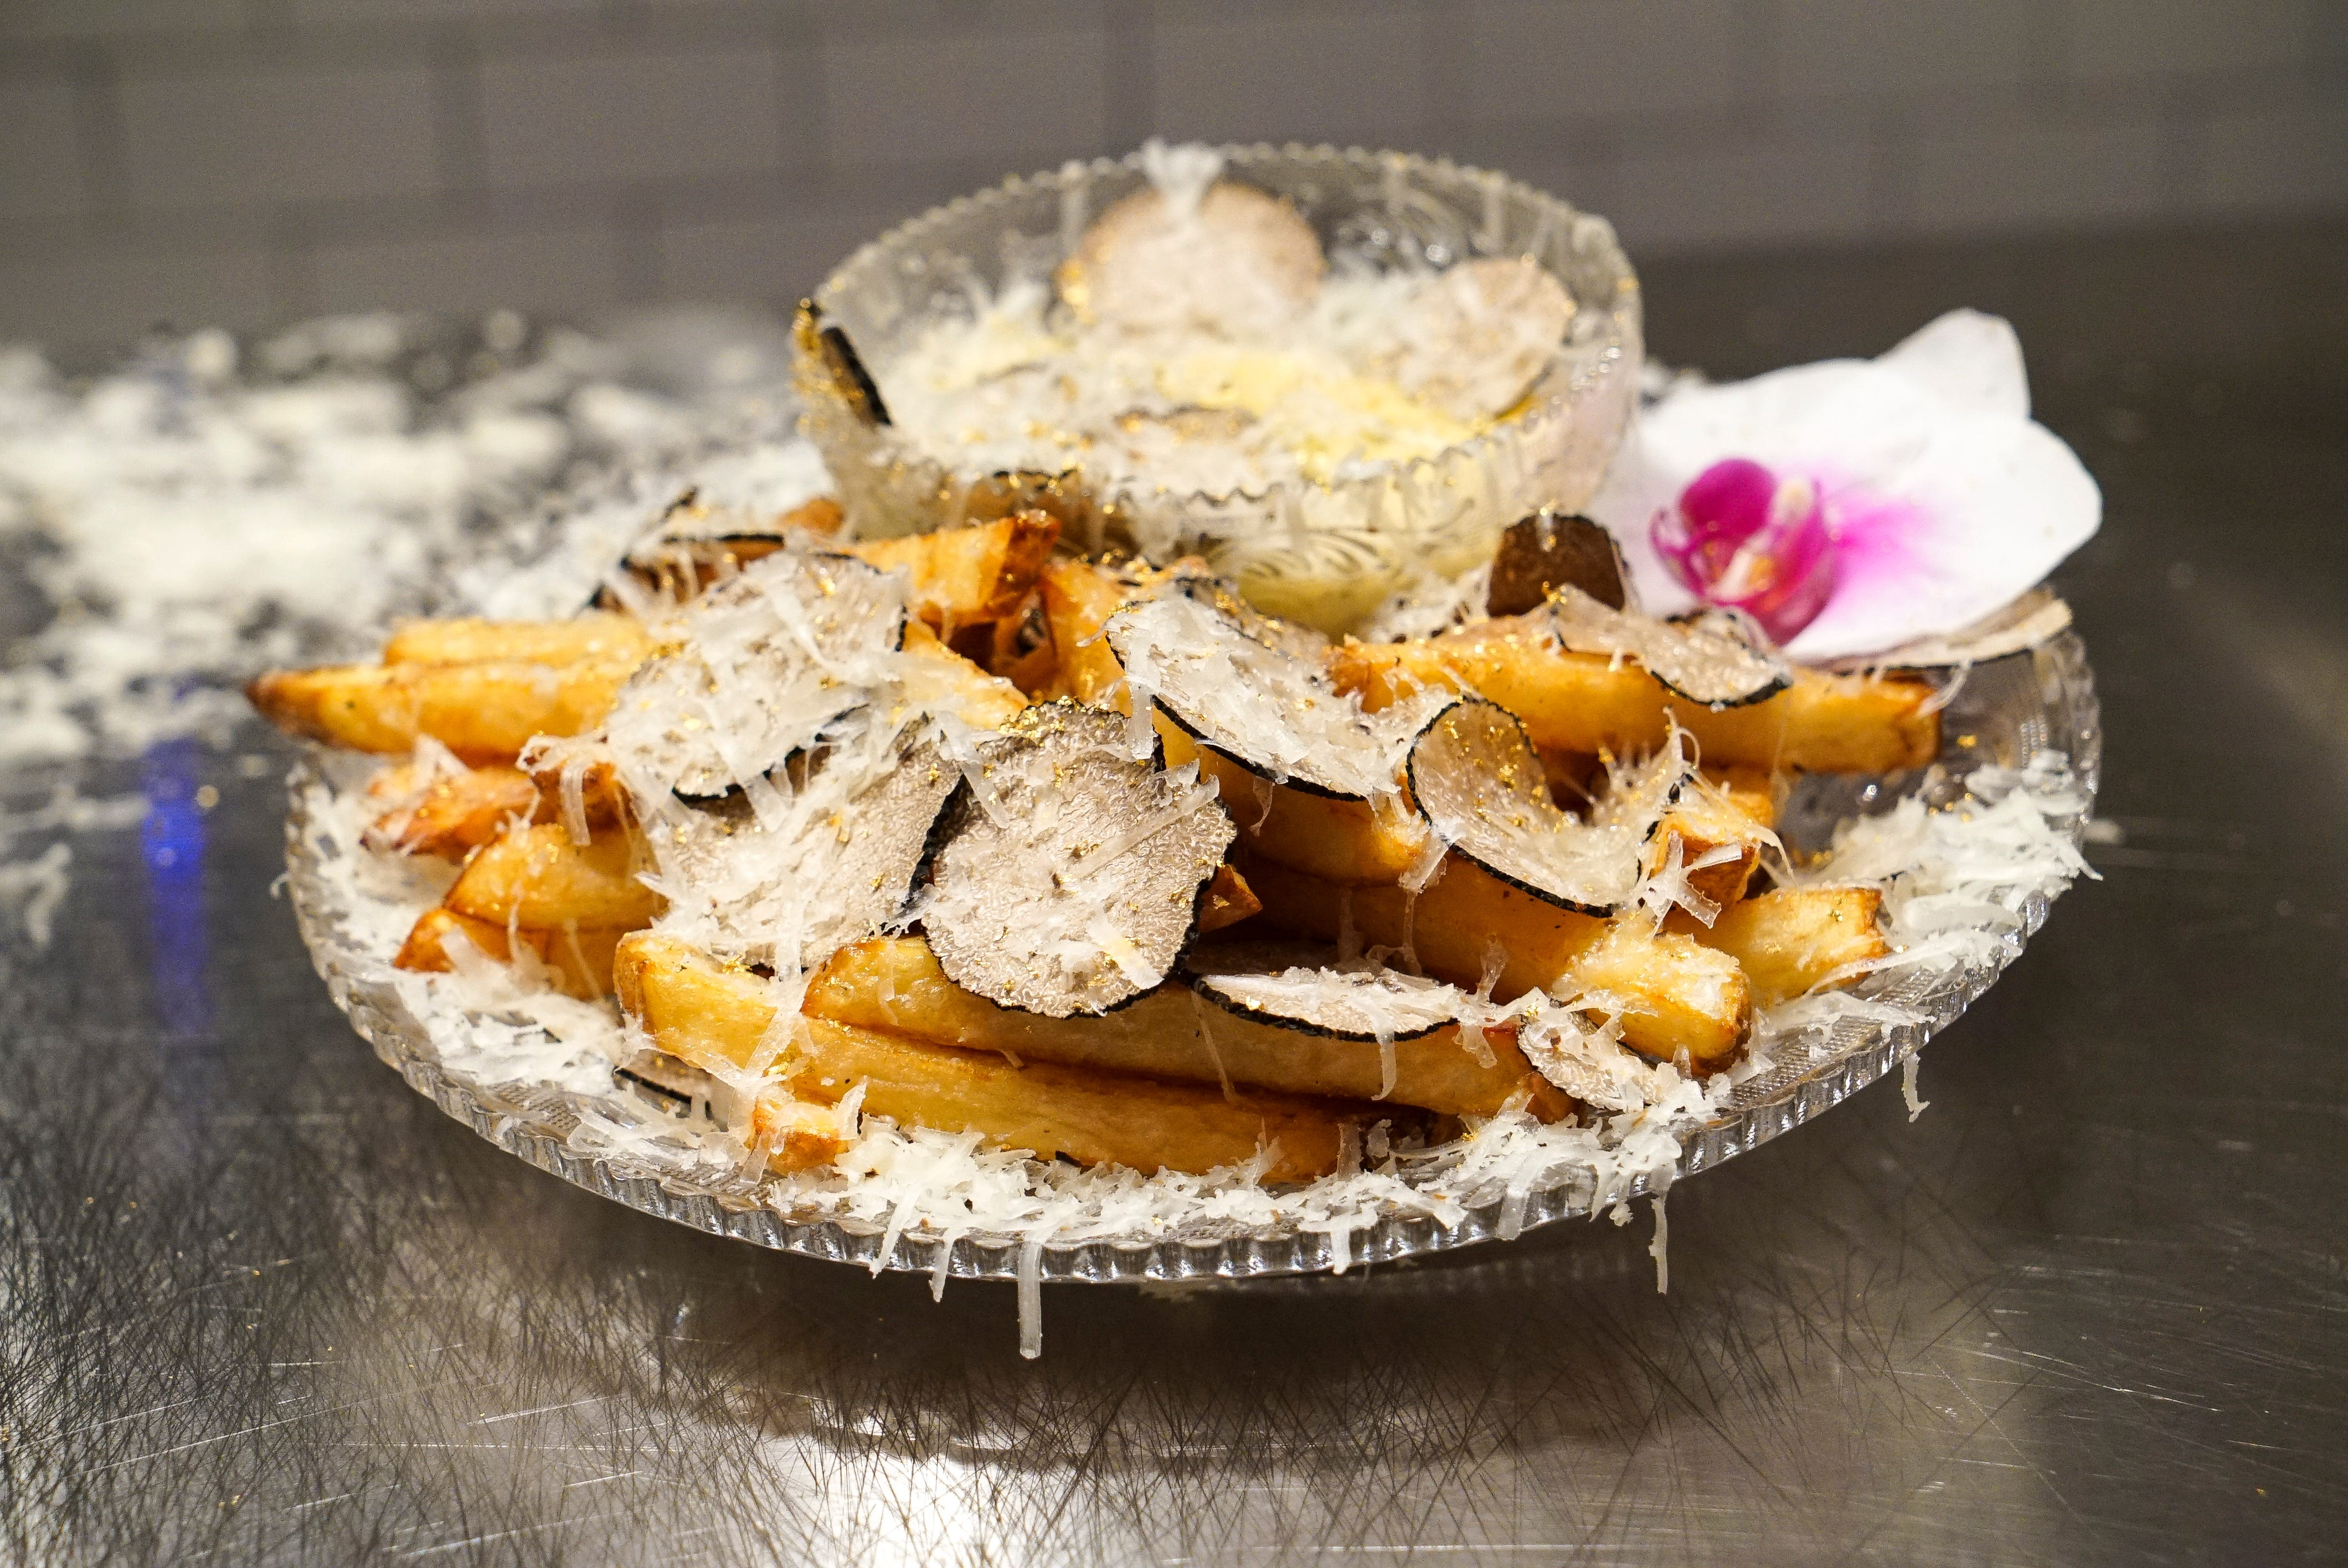 World's most expensive fries are at Serendipity3 in New York City